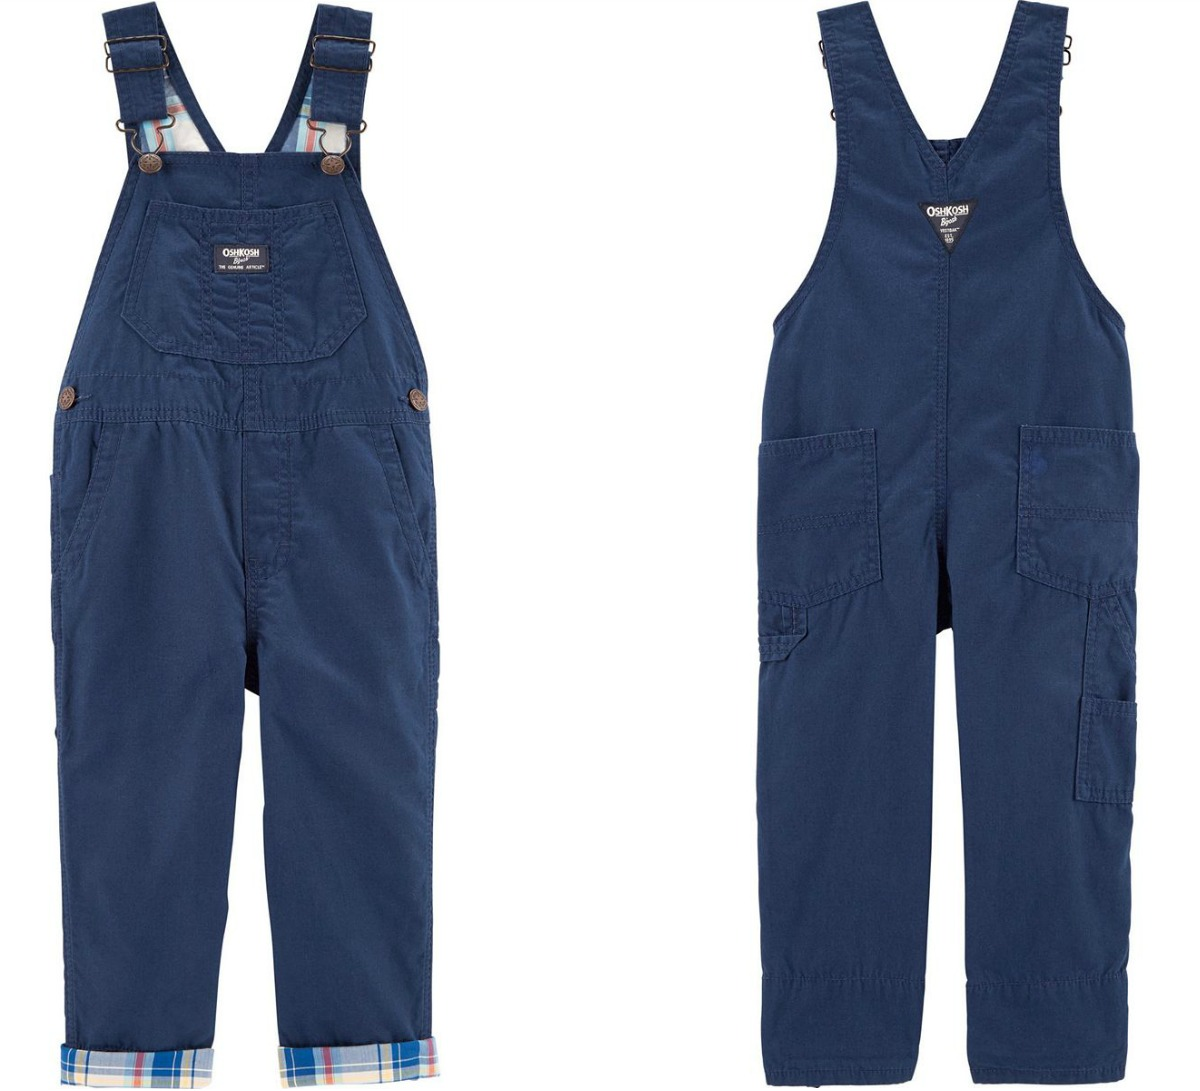 Front and back view of boys denim overalls